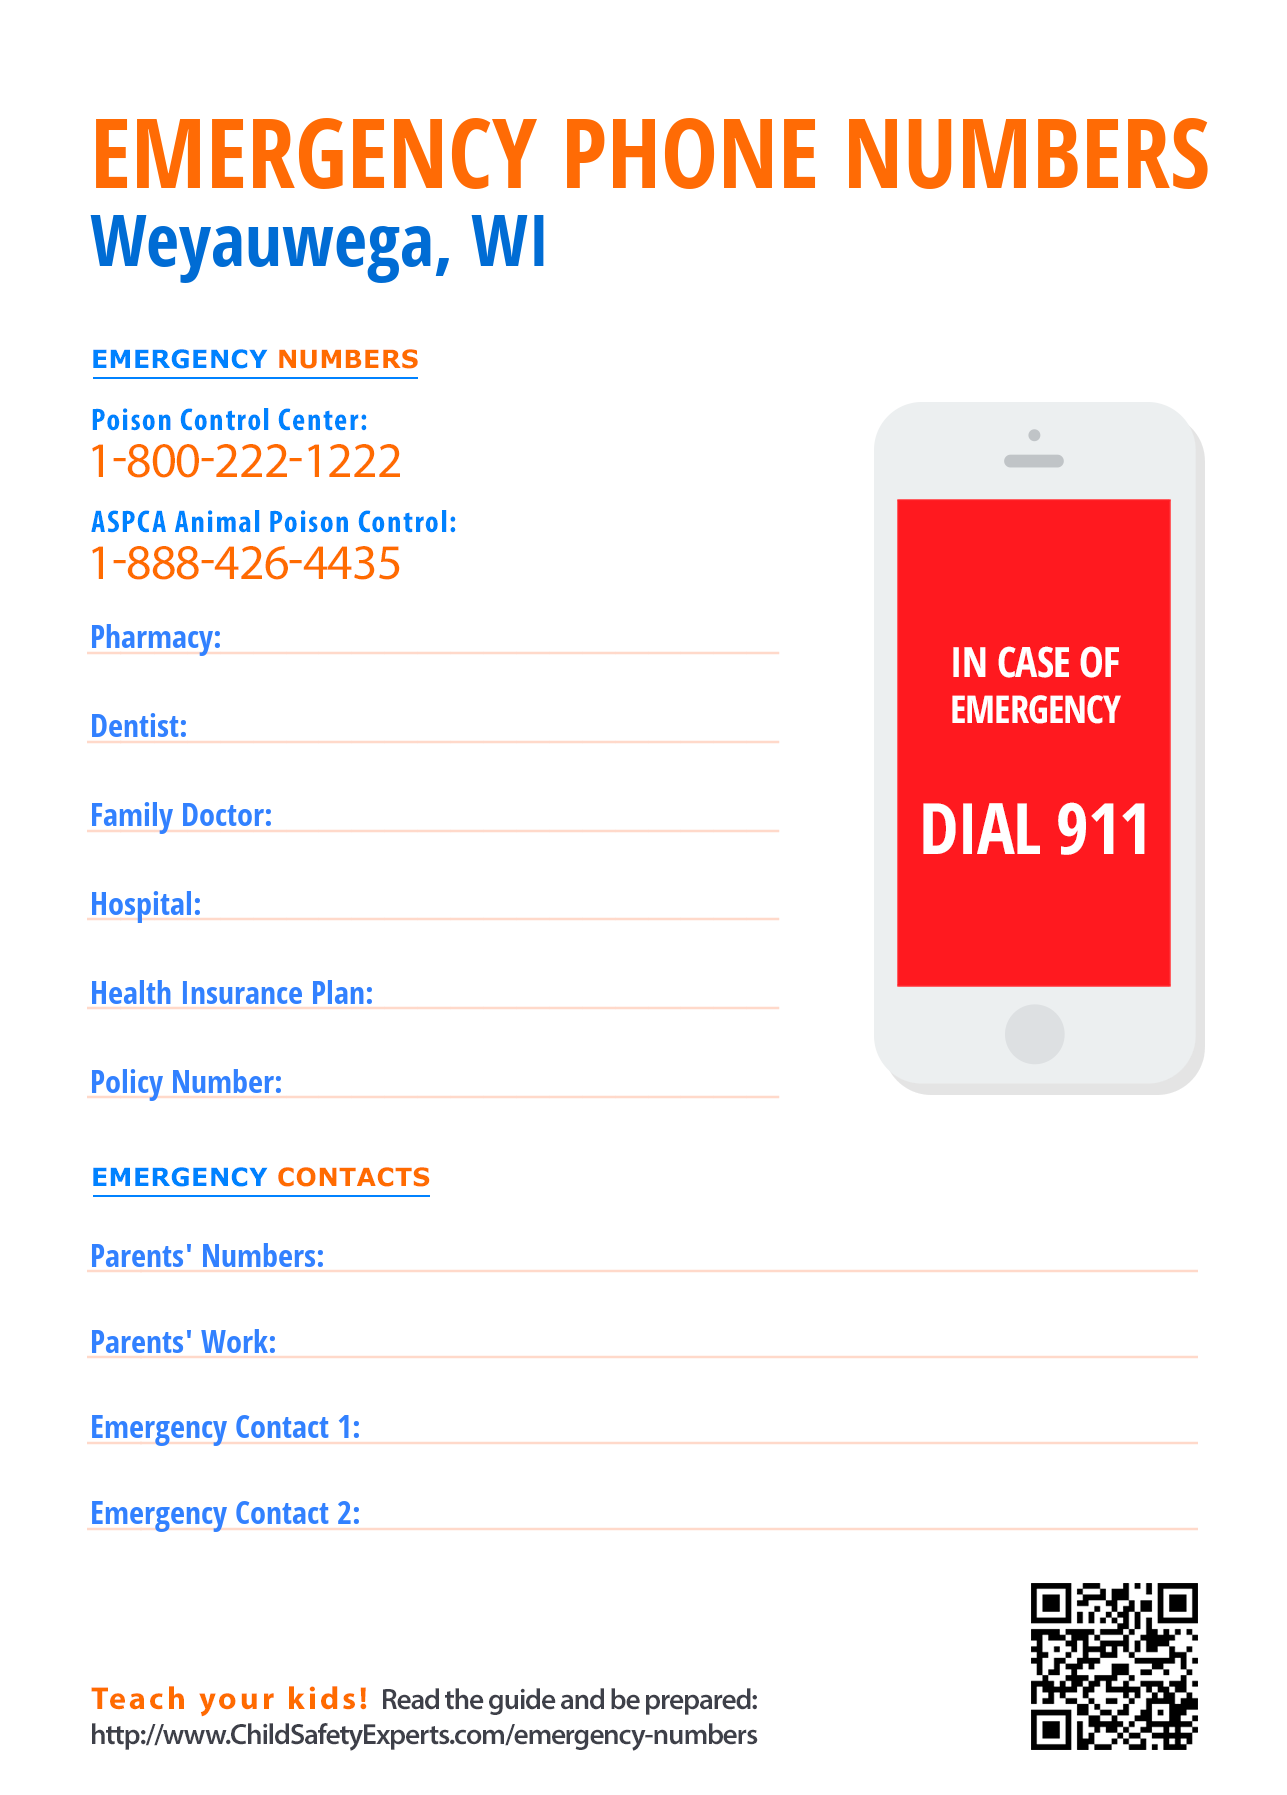 Important Emergency Phone Numbers - Print and hang on the fridge